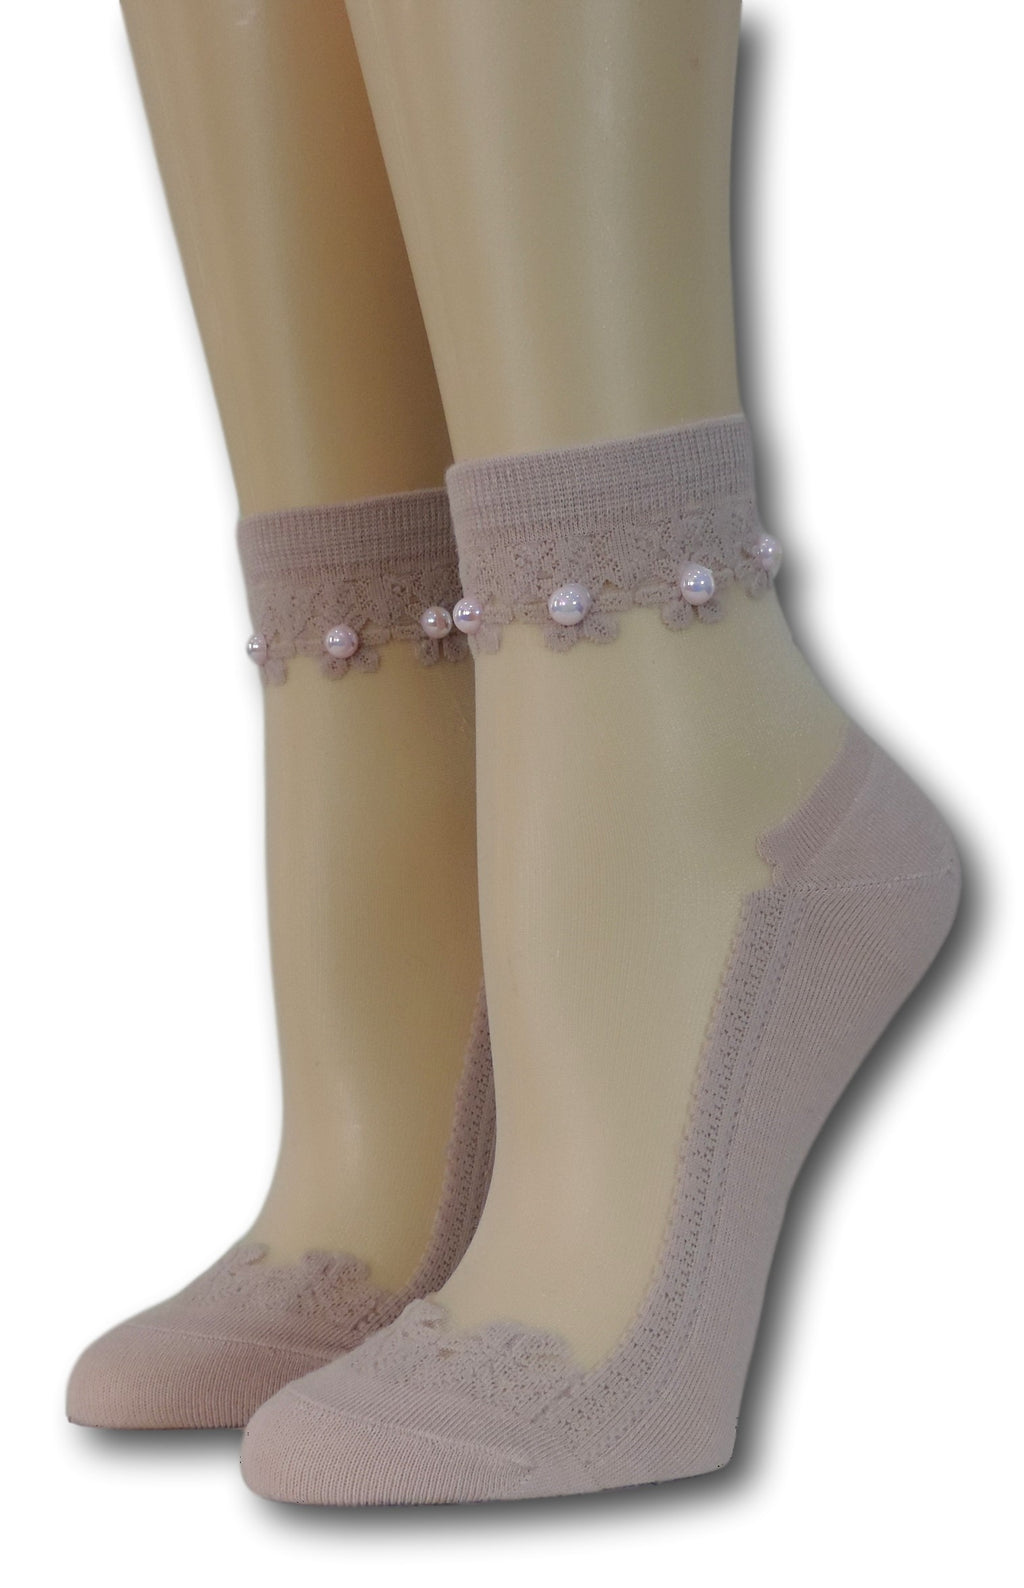 Soft Berry Elegant Sheer Socks with beads